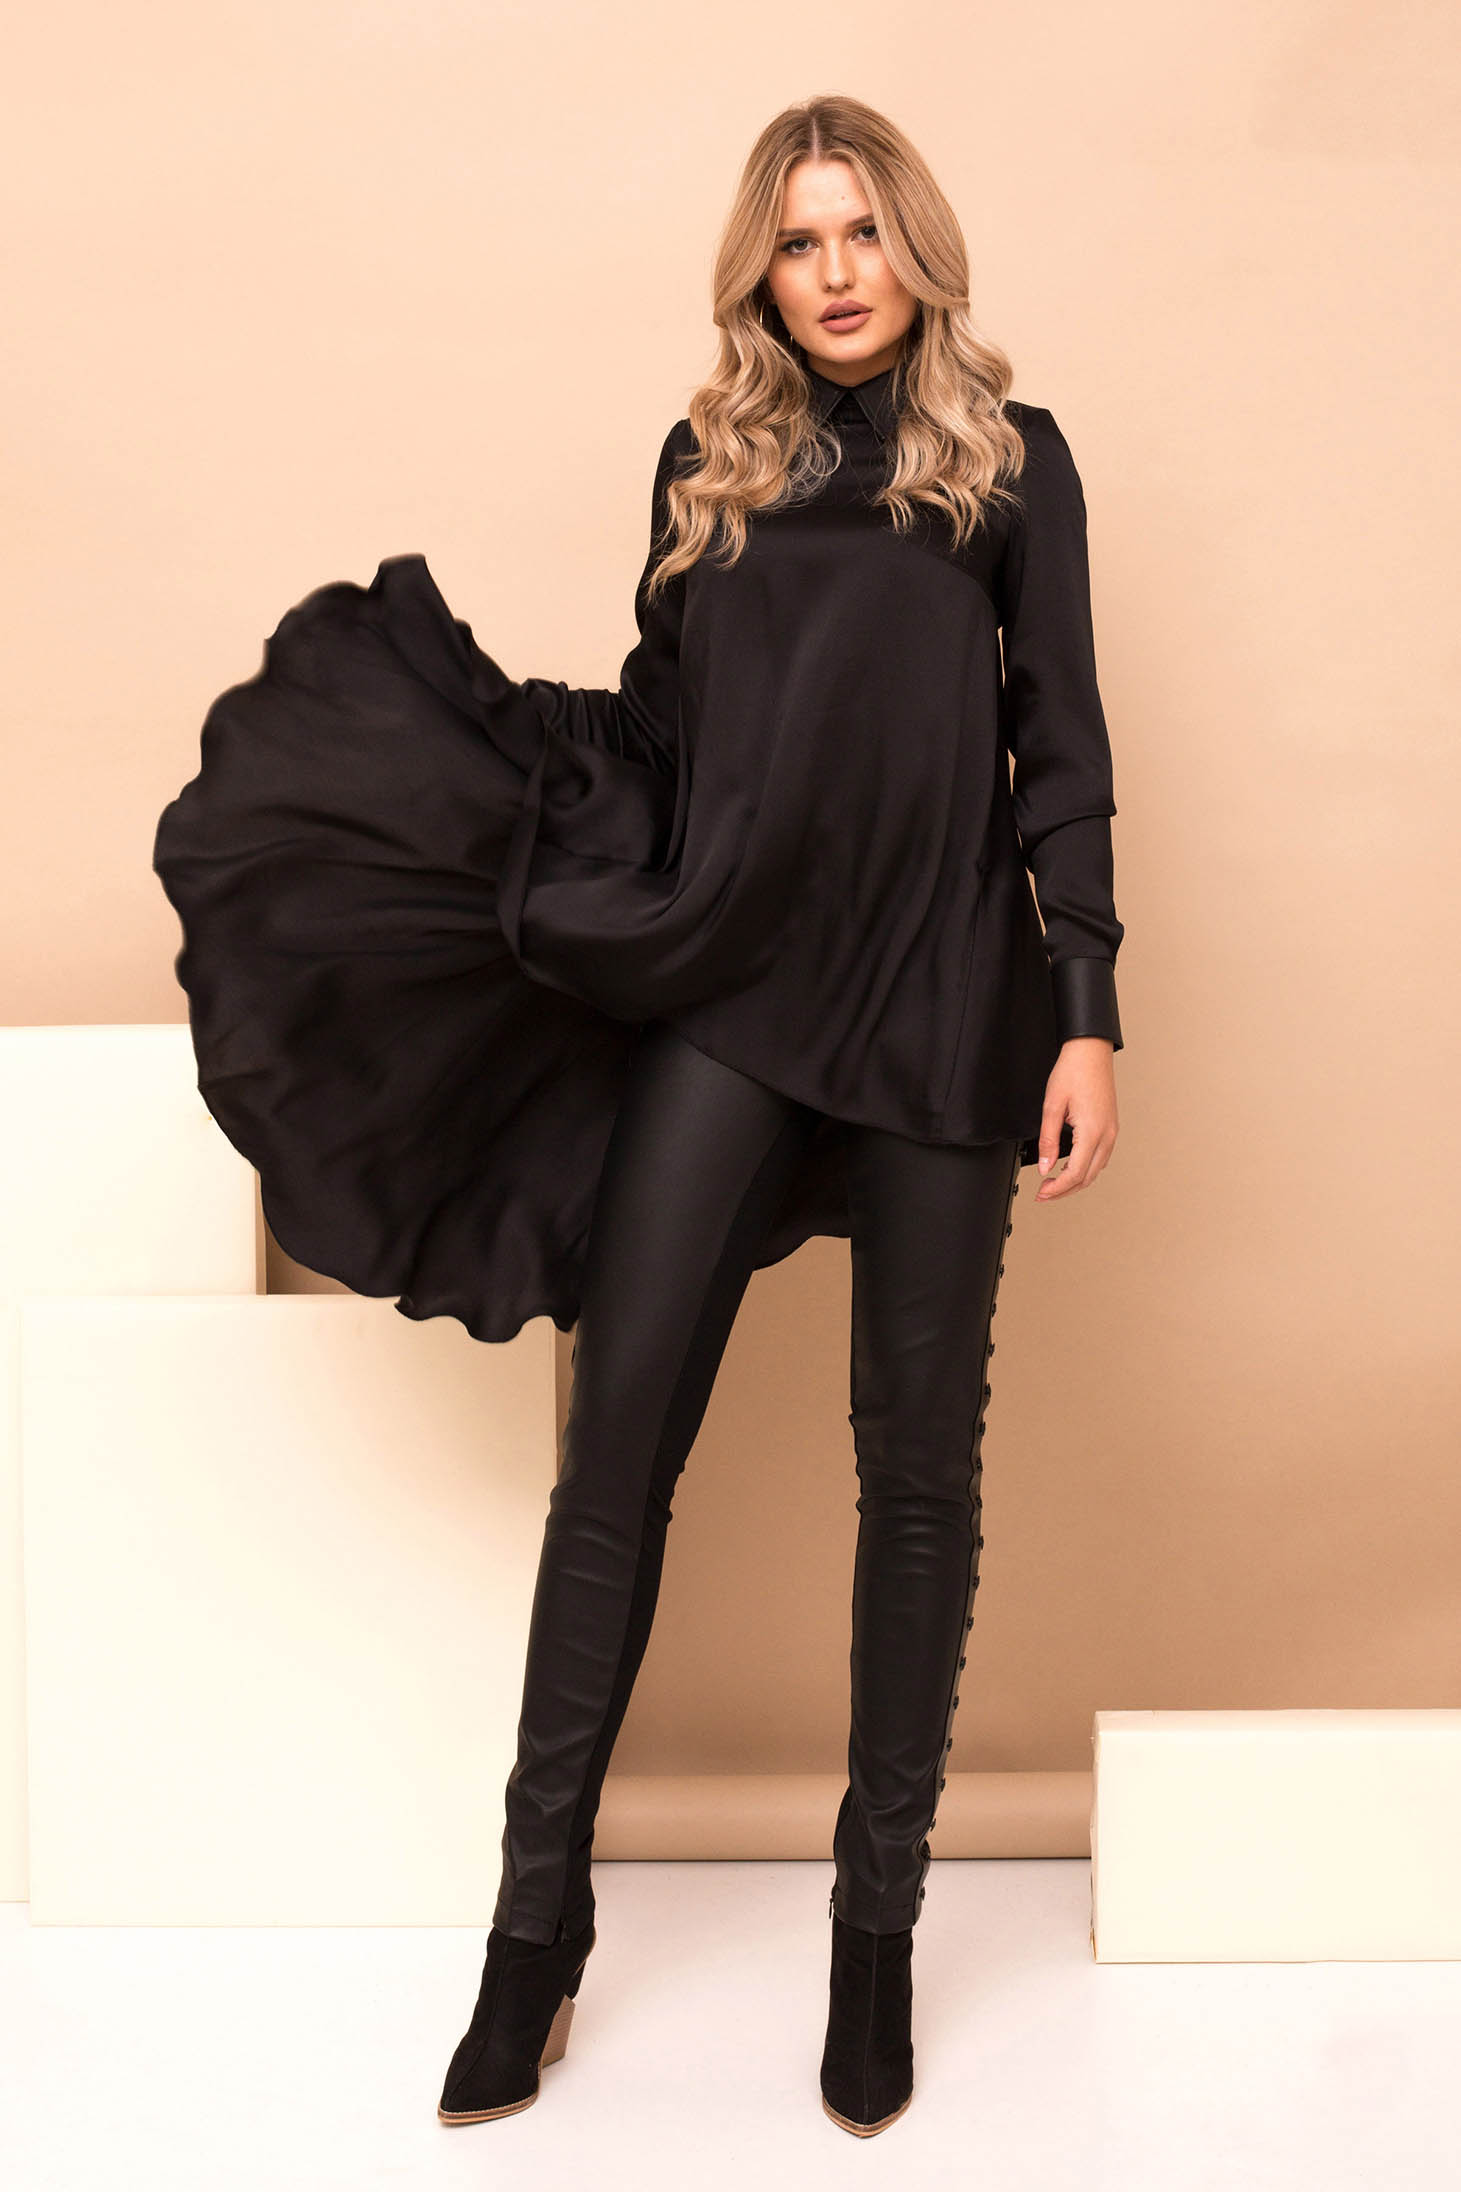 Black casual high waisted tights from ecological leather with metallic details